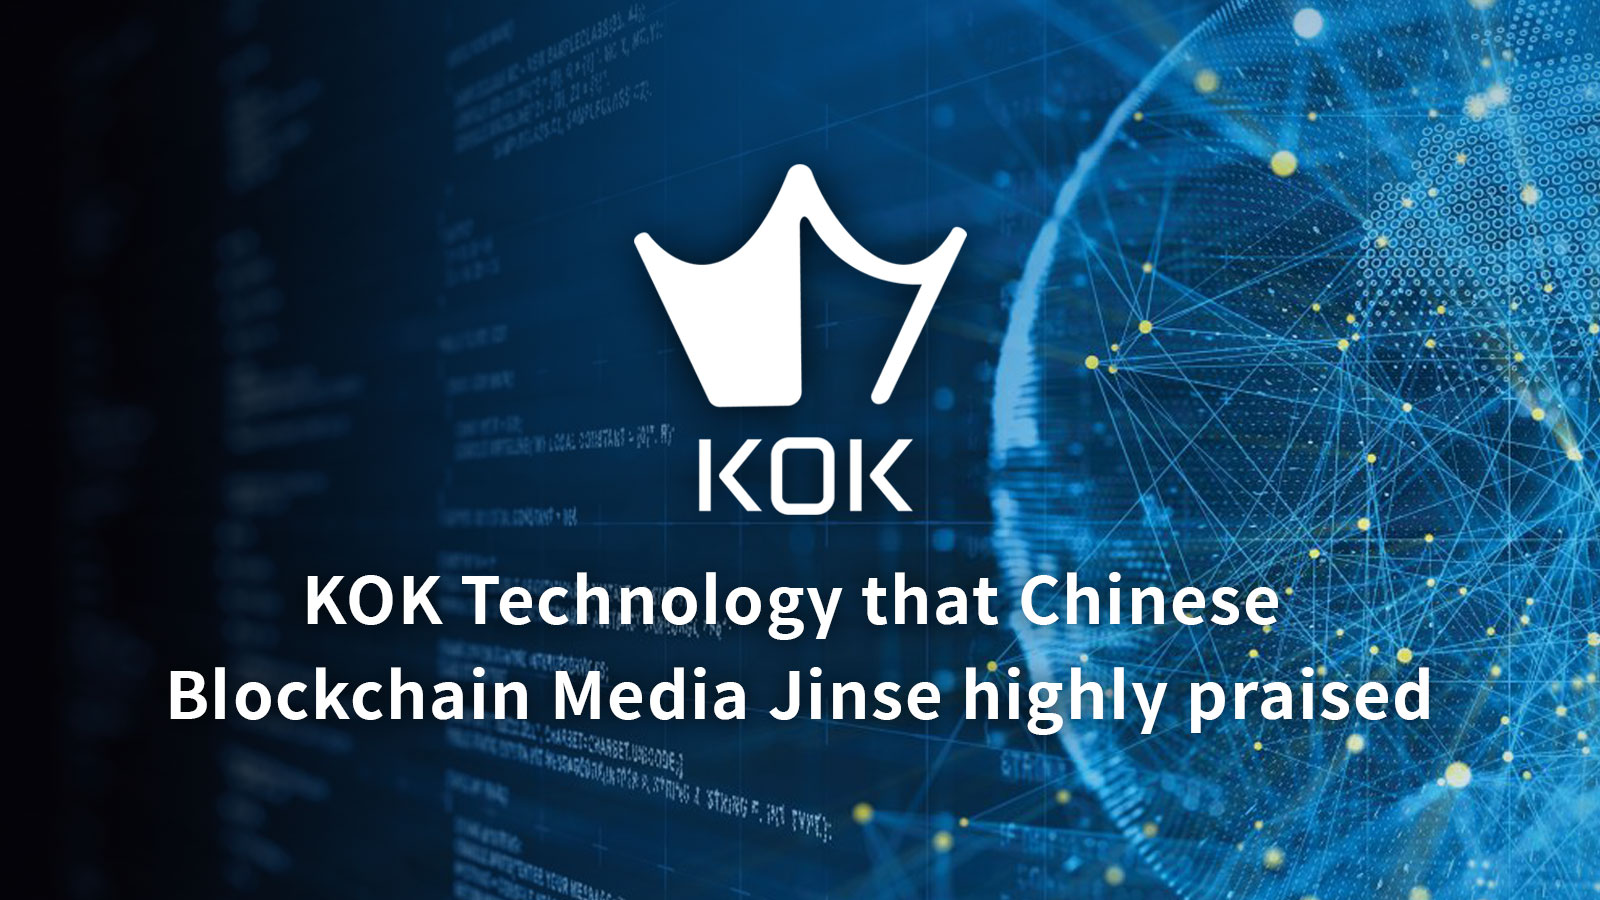 Jinse, China's representative blockchain media, introduced KOK